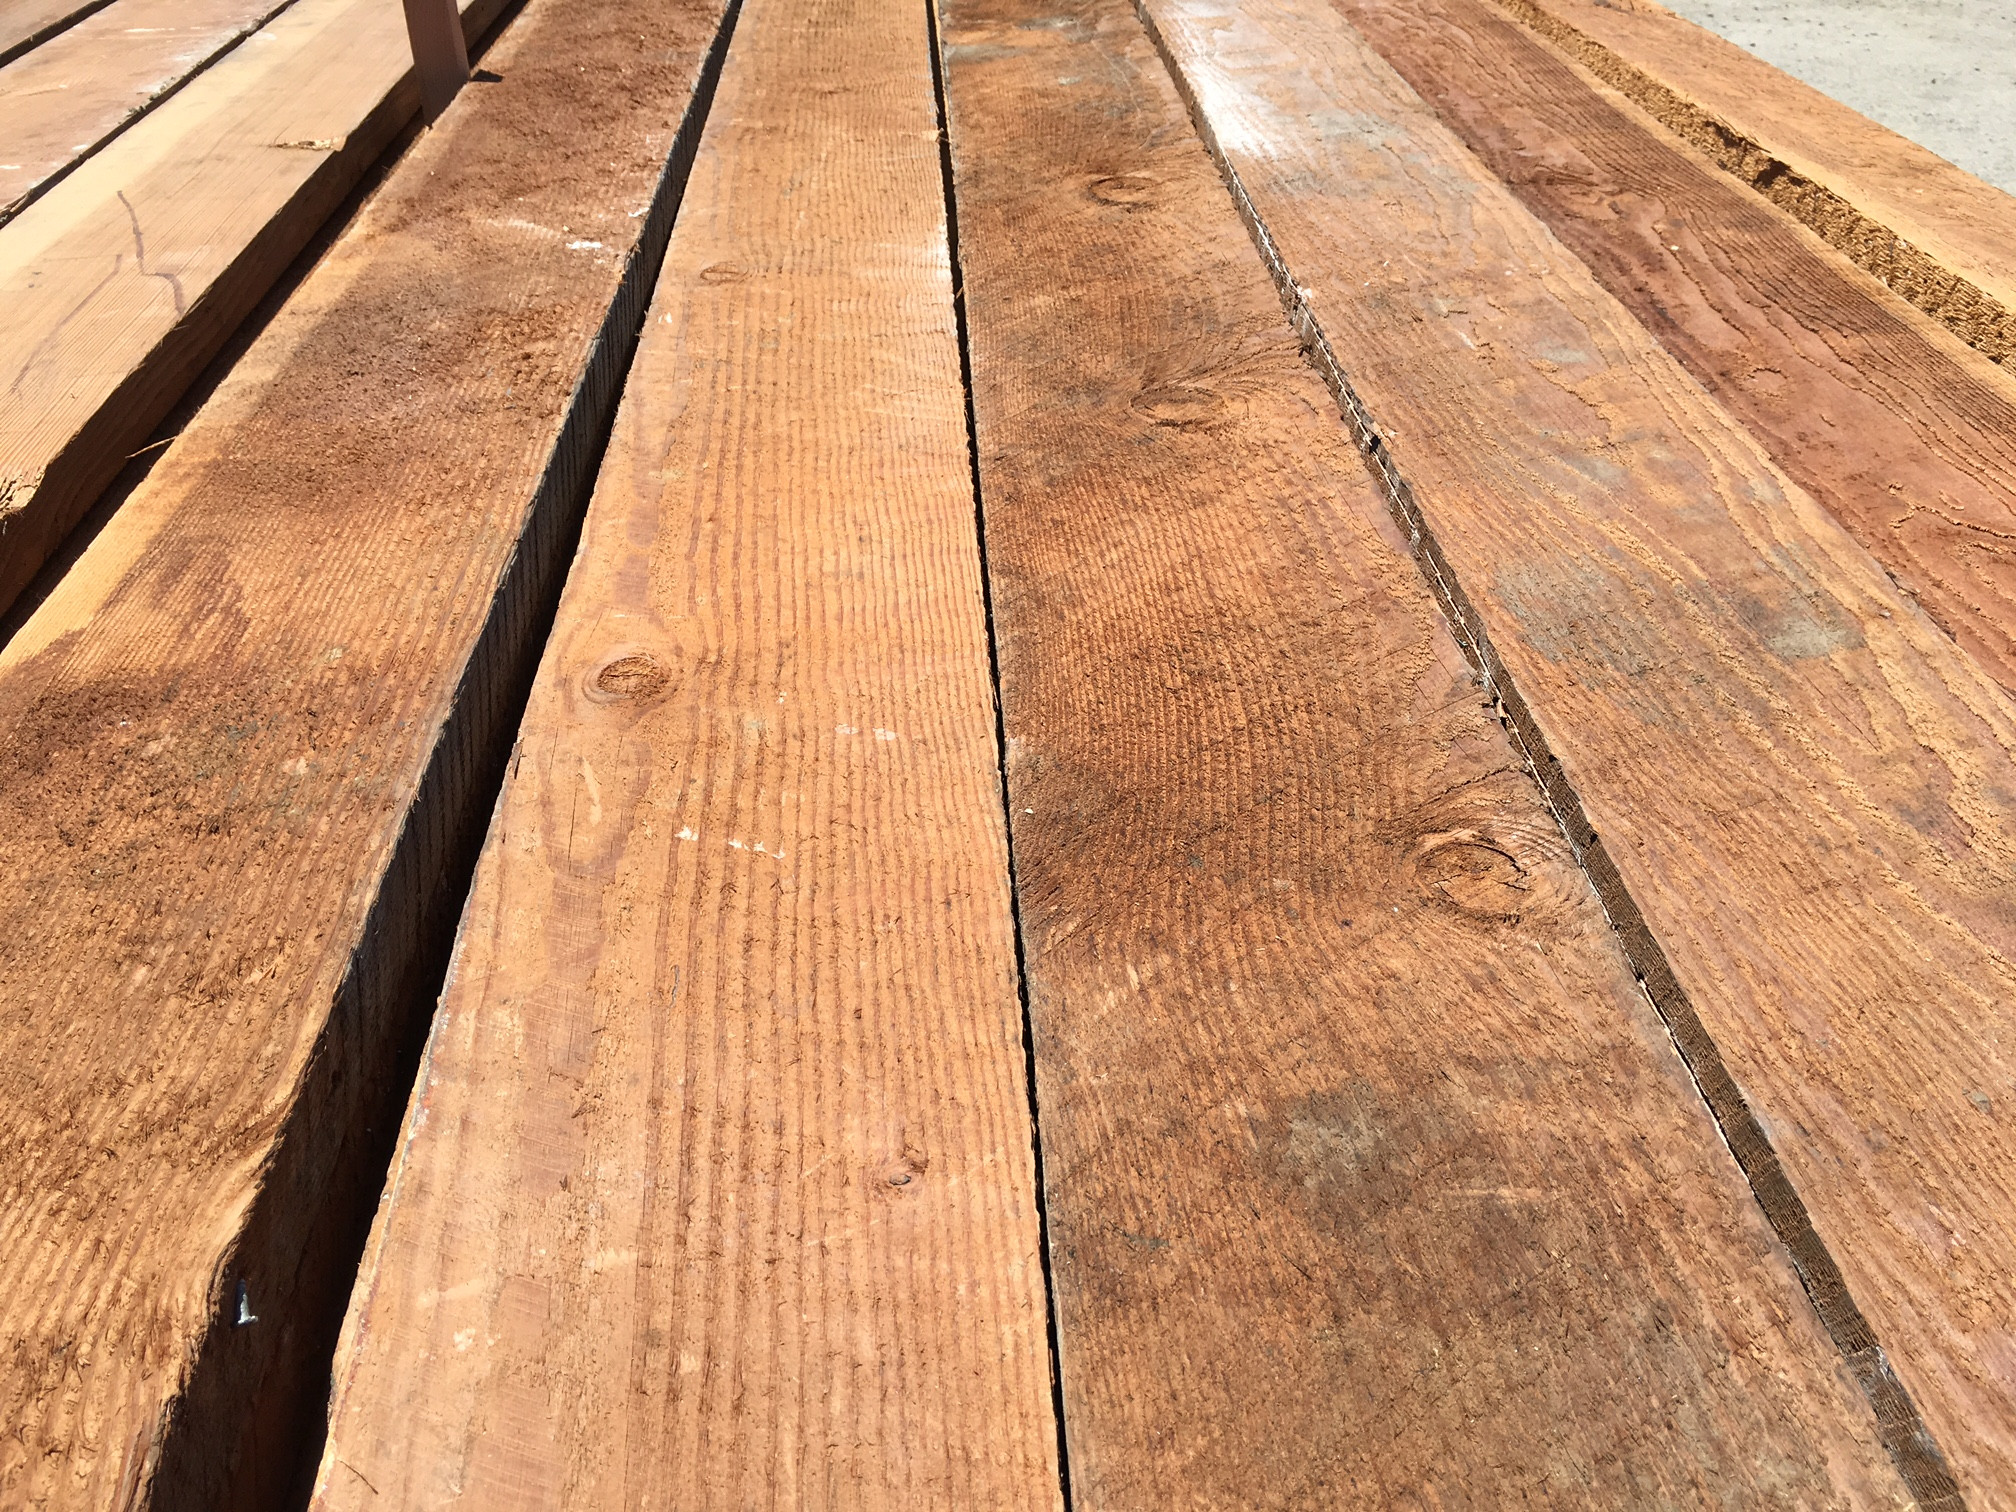 hardwood flooring salem nh of heritage salvage heritage salvage within floor and ceiling joists from the historic novato theater perfect for milling shelving table tops and more large supply available